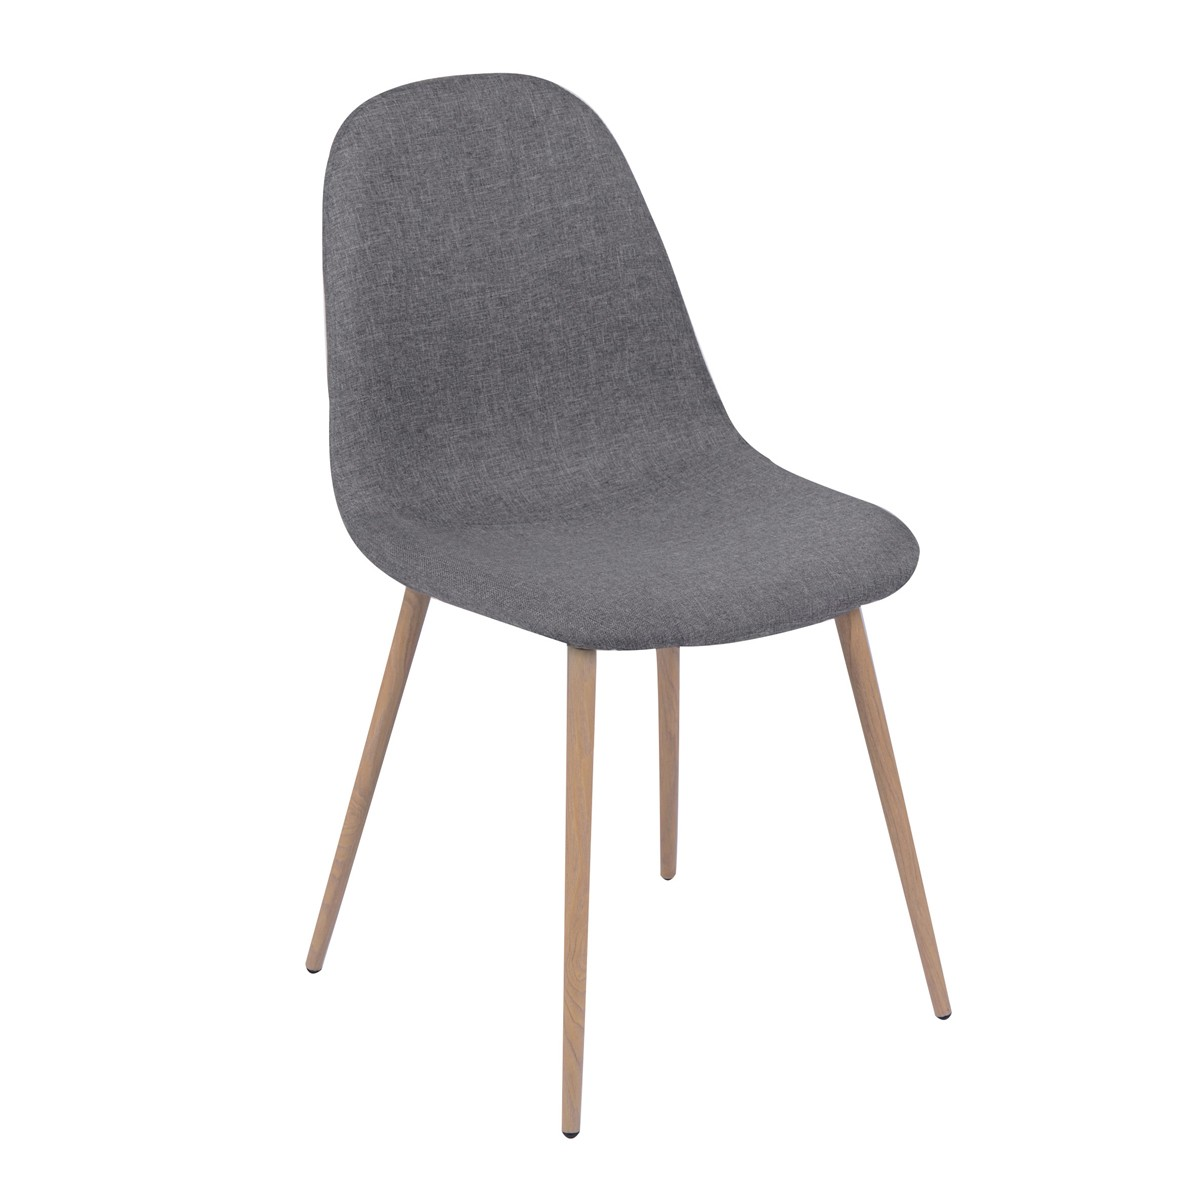 Chaise grise salle a manger maison design for Lot de 6 chaises grises